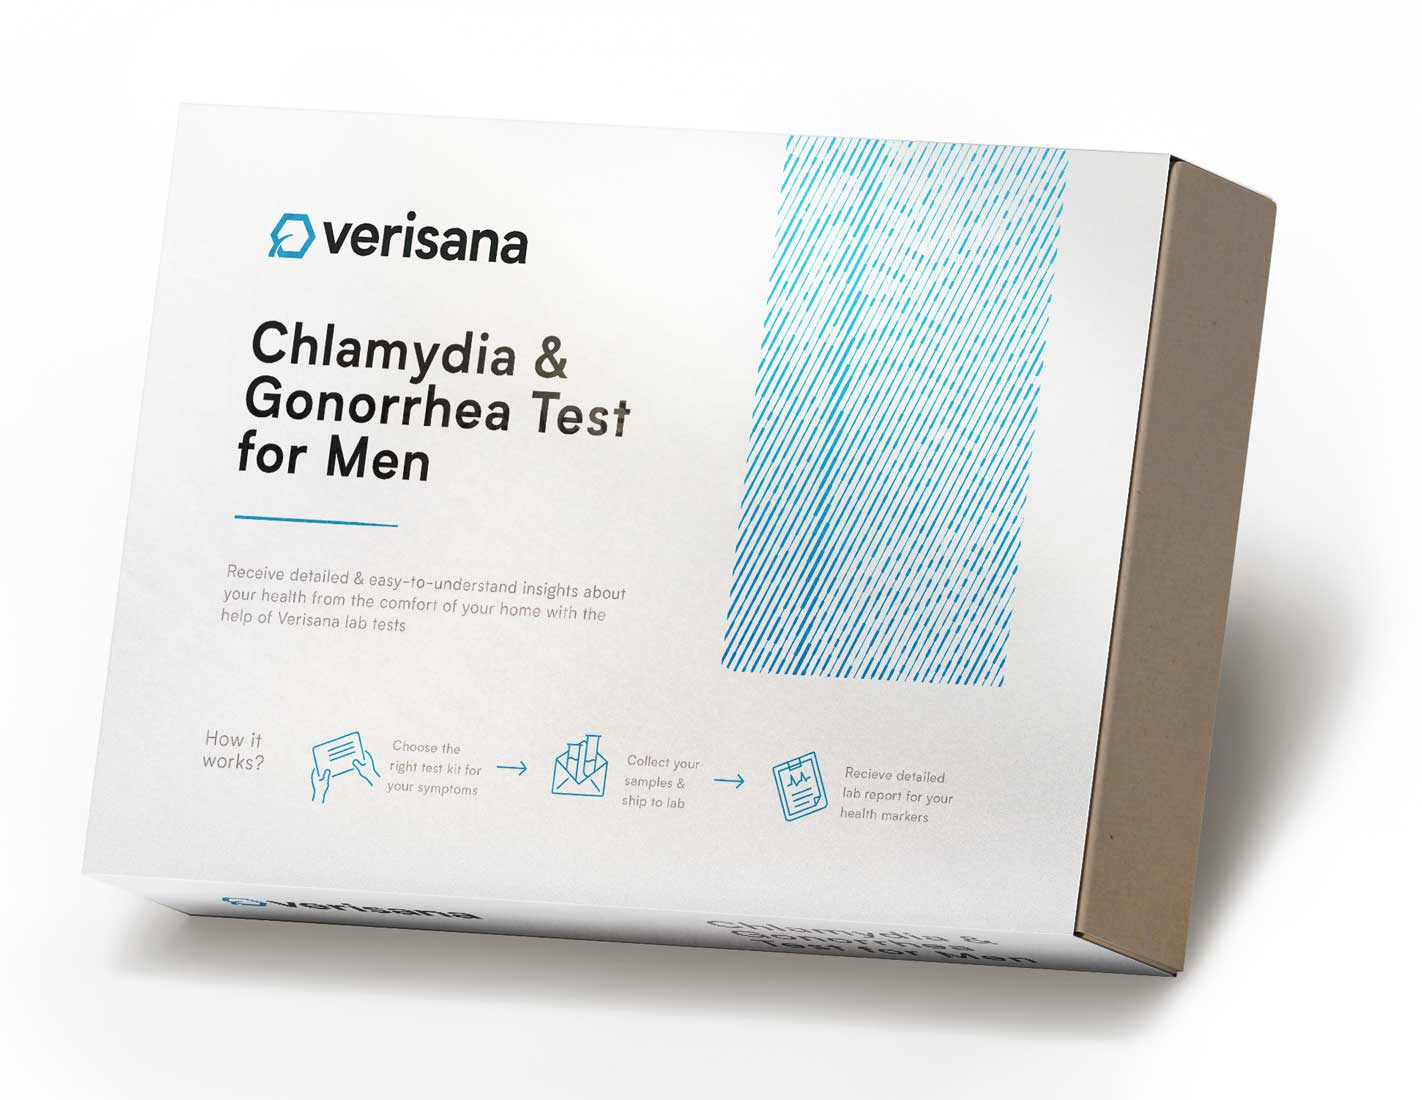 Chlamydia-and-Gonorrhea-Test-for-Men-Testkit